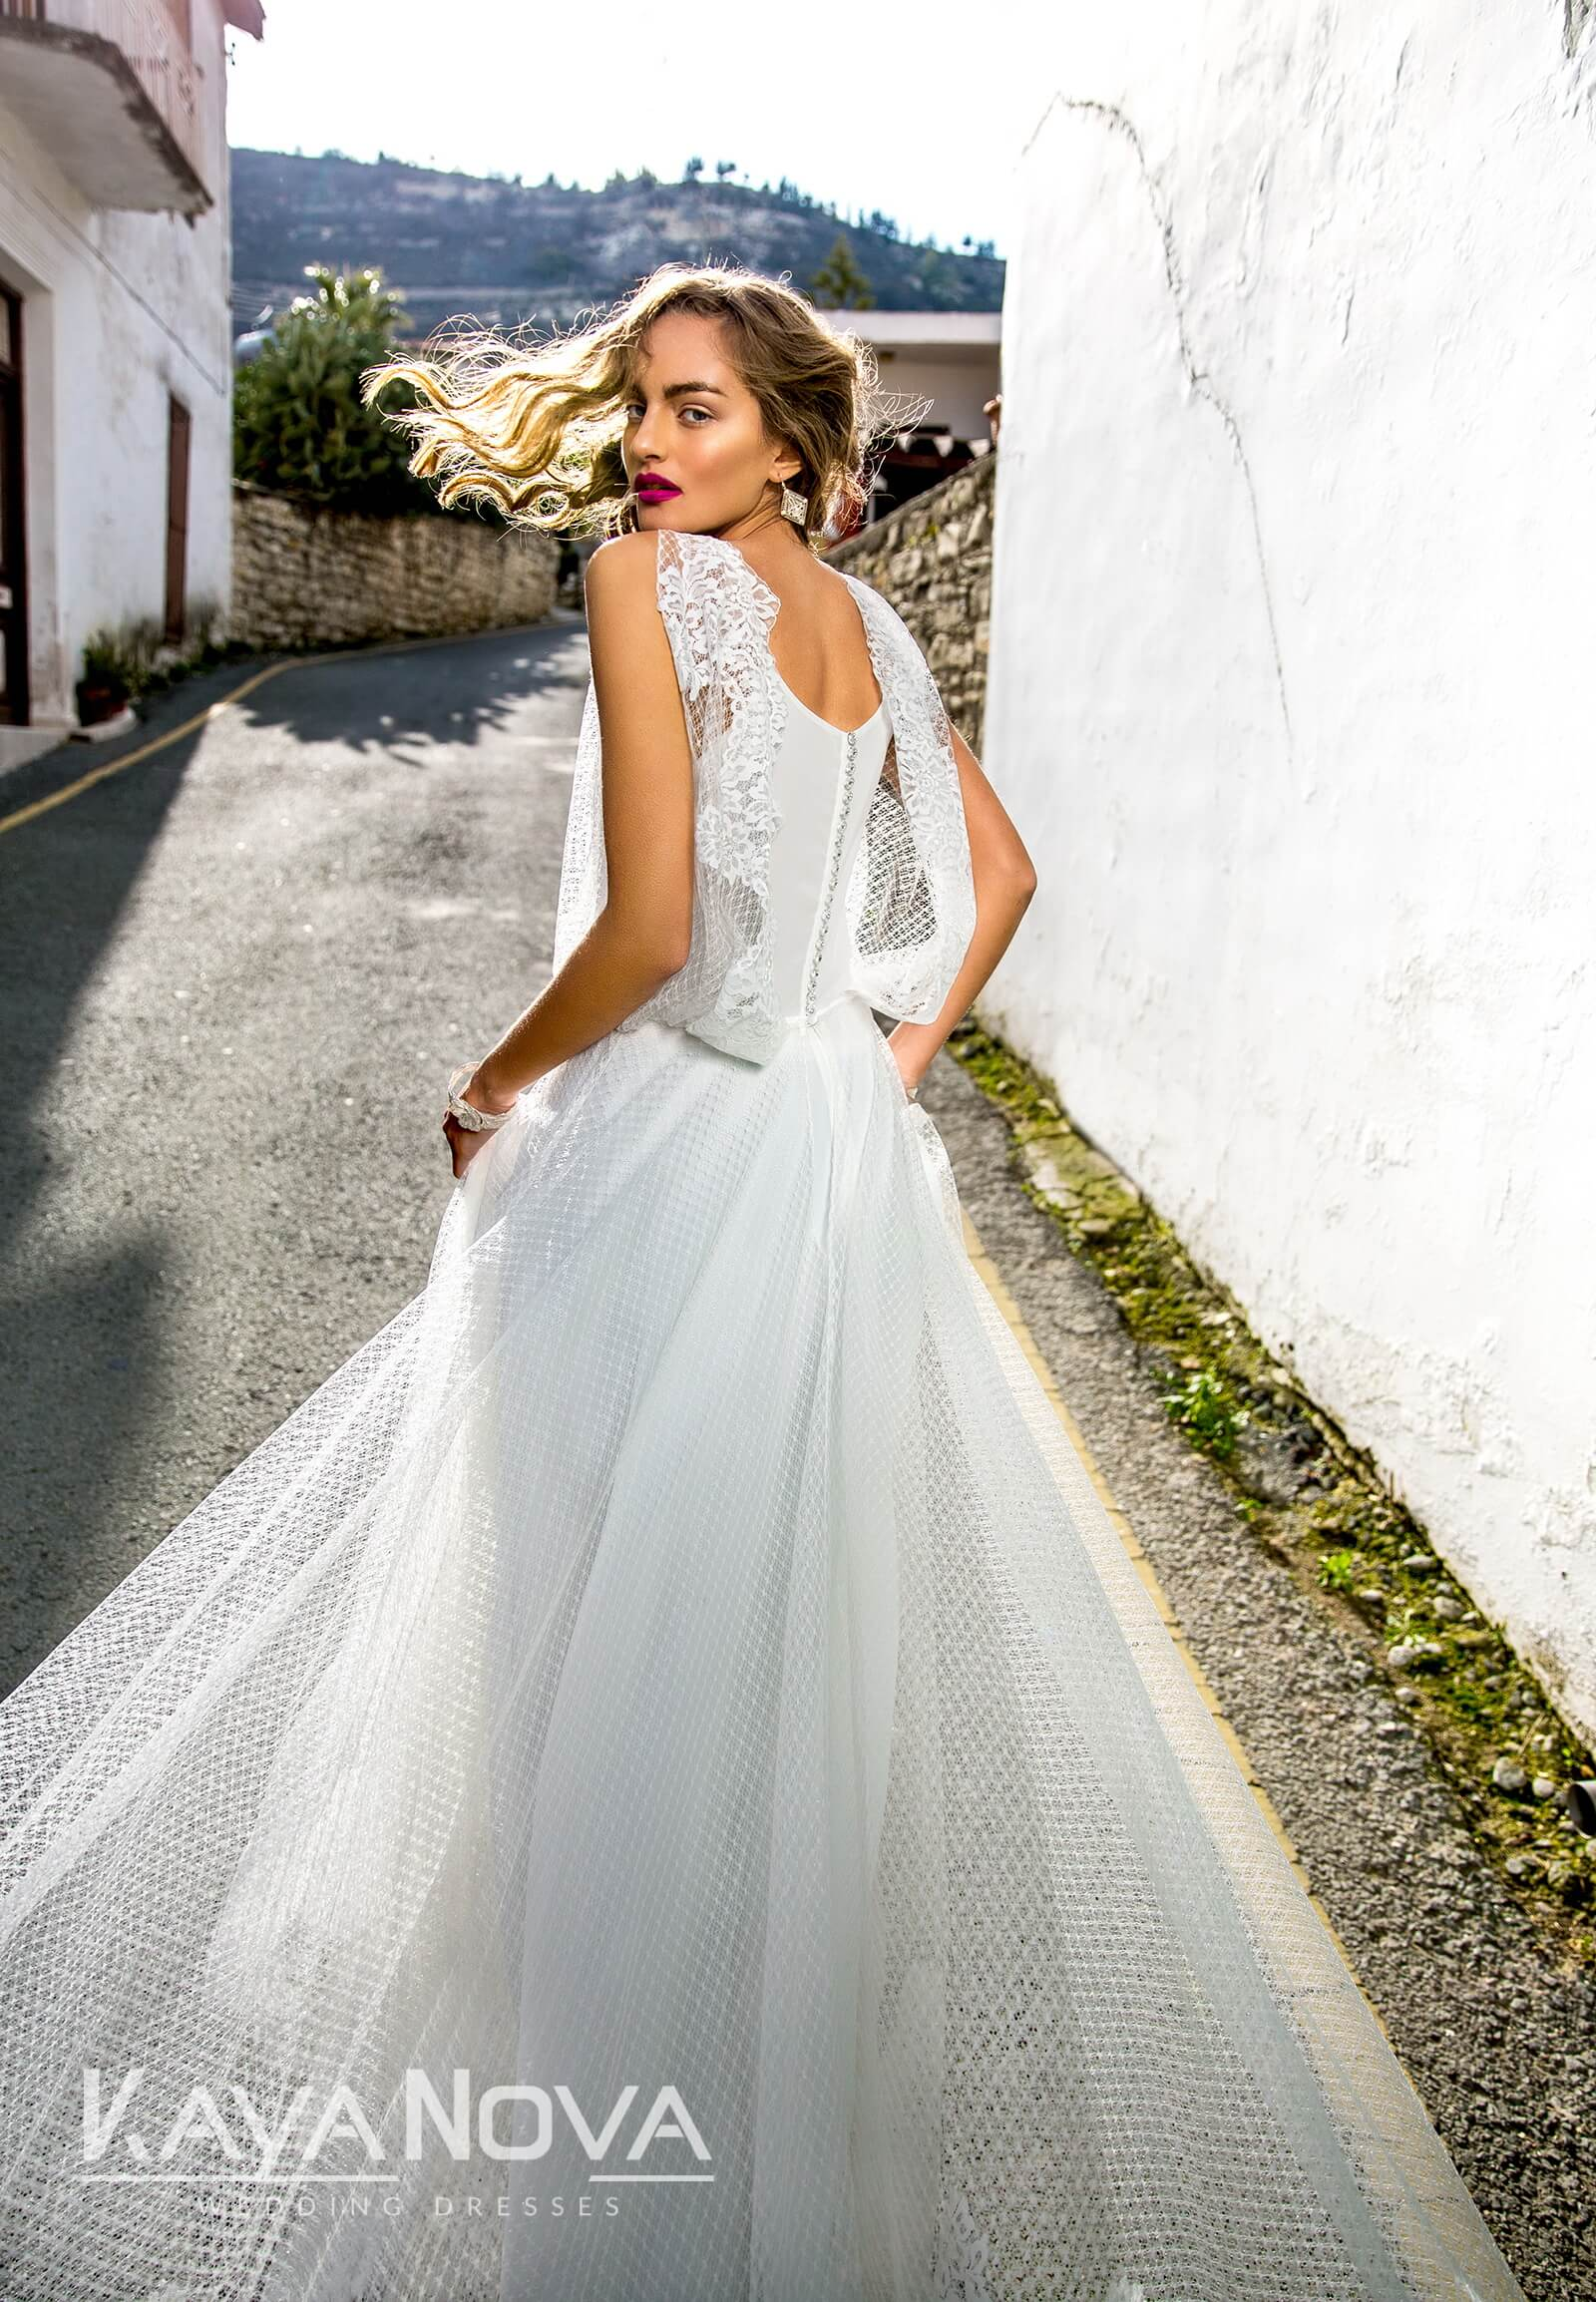 https://kayawedding.com/images/stories/virtuemart/product/Alathea 48.jpg